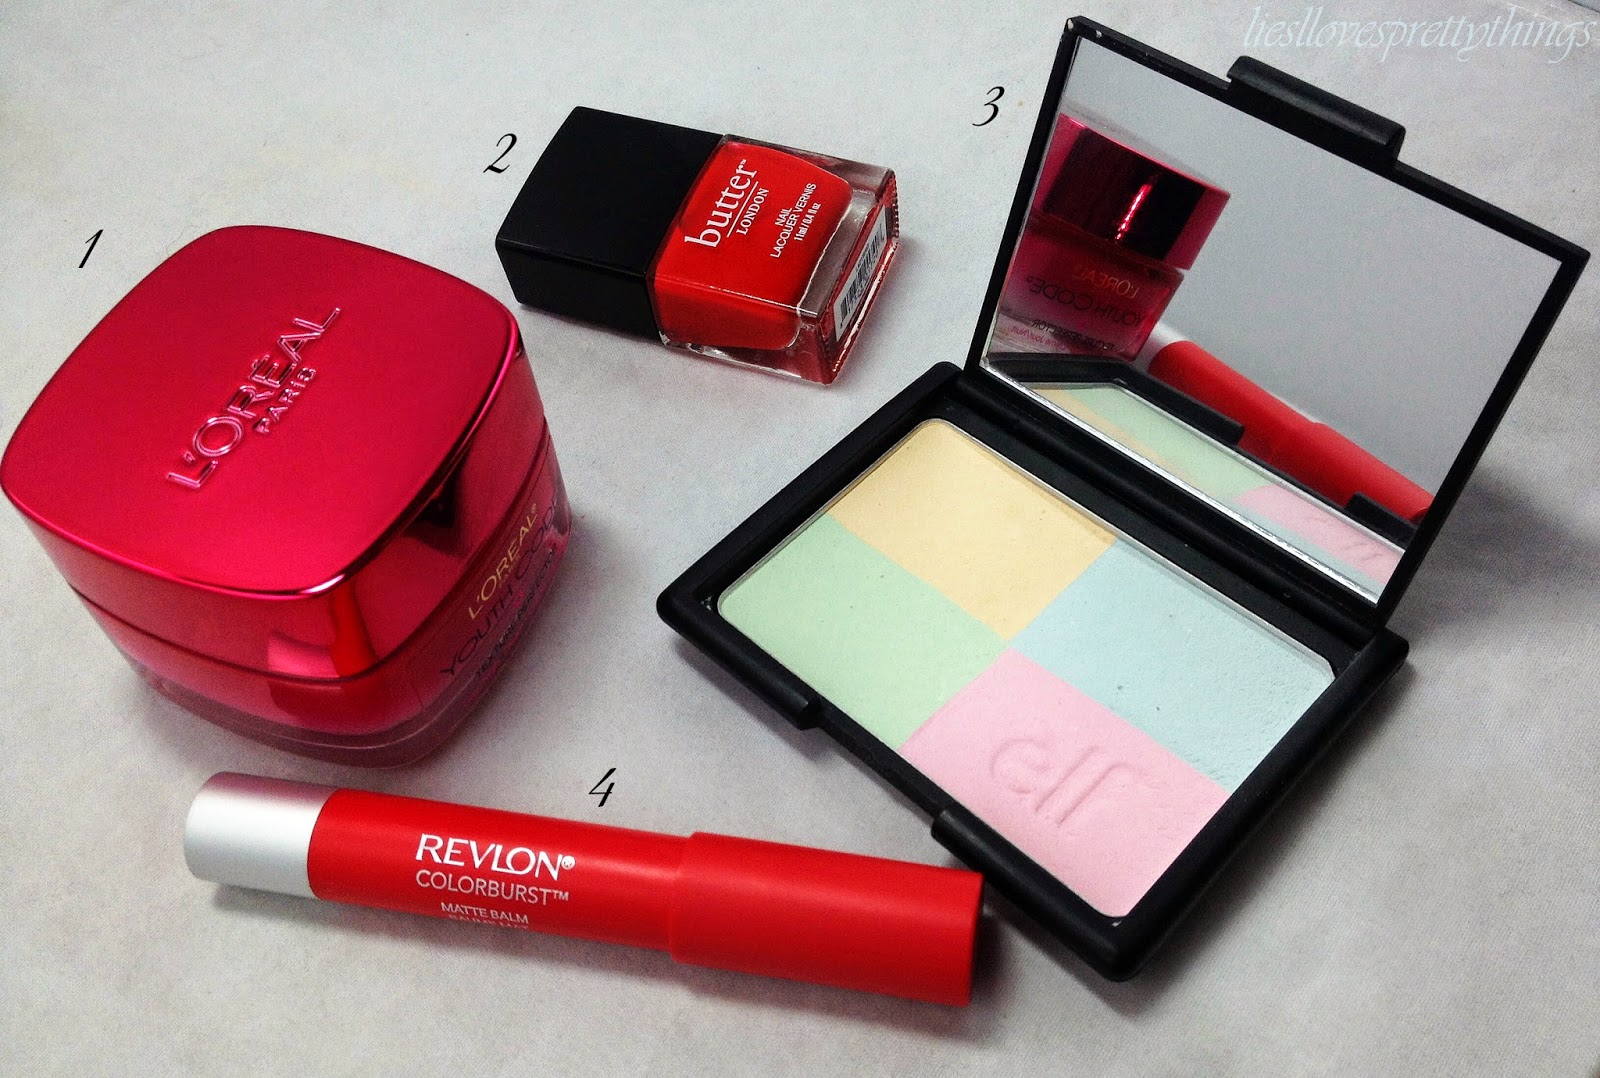 July Favorites-- L'Oreal Youth Code Texture Perfector day/night cream, Butter London Ladybird, e.l.f. Tone Correcting Powder, Revlon Colorburst Matte Balm in Striking